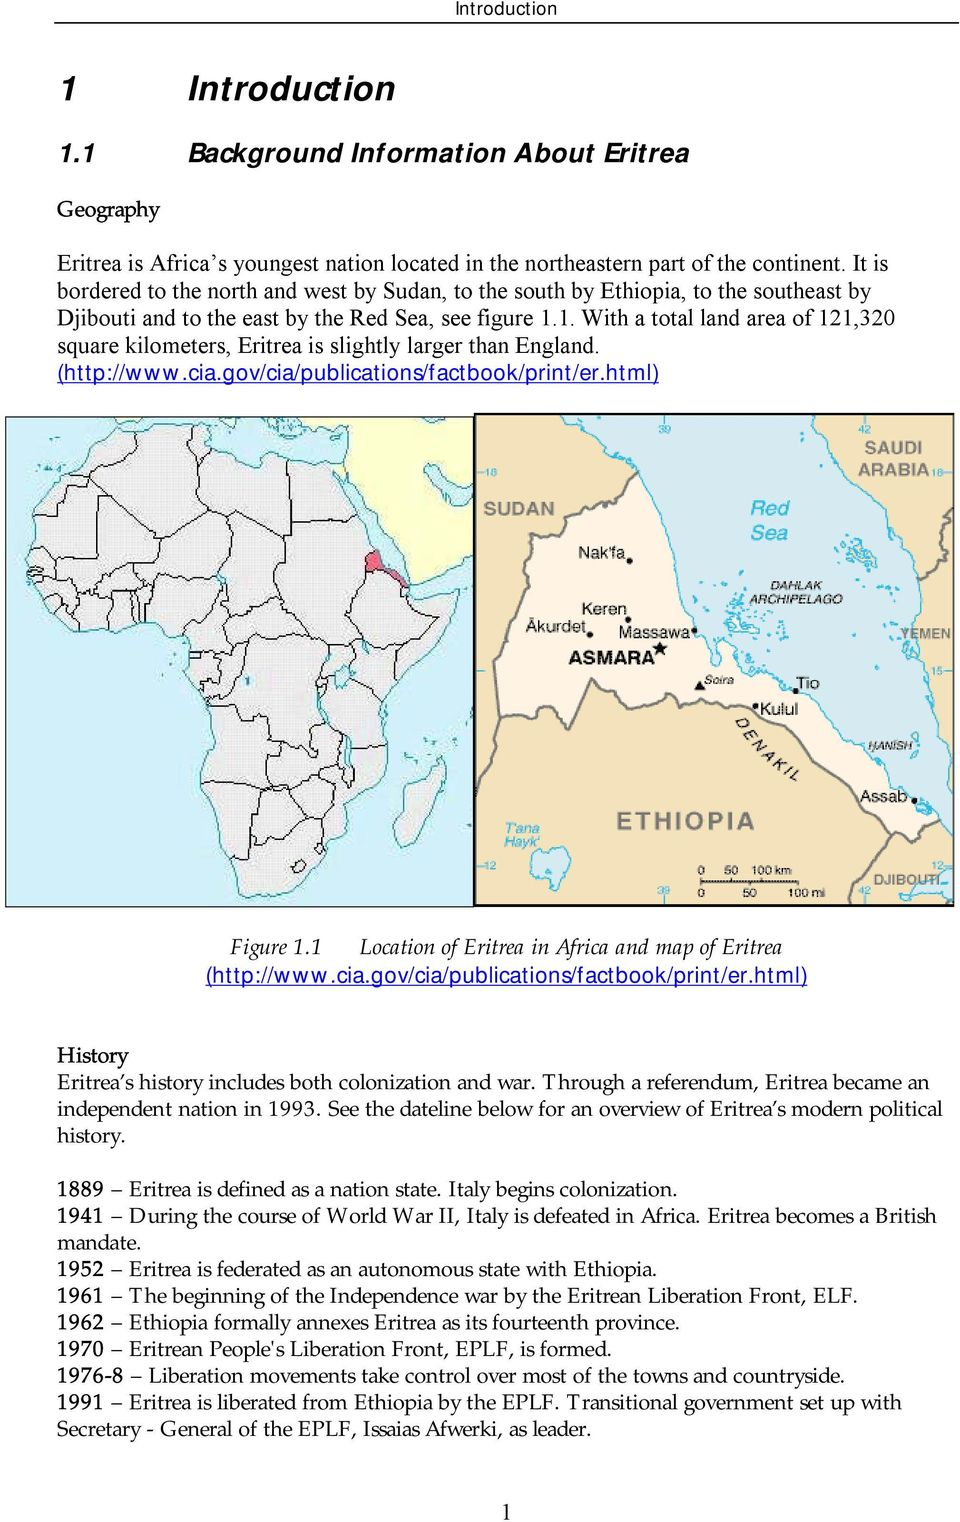 1. With a total land area of 121,320 square kilometers, Eritrea is slightly larger than England. (http://www.cia.gov/cia/publications/factbook/print/er.html) Figure 1.